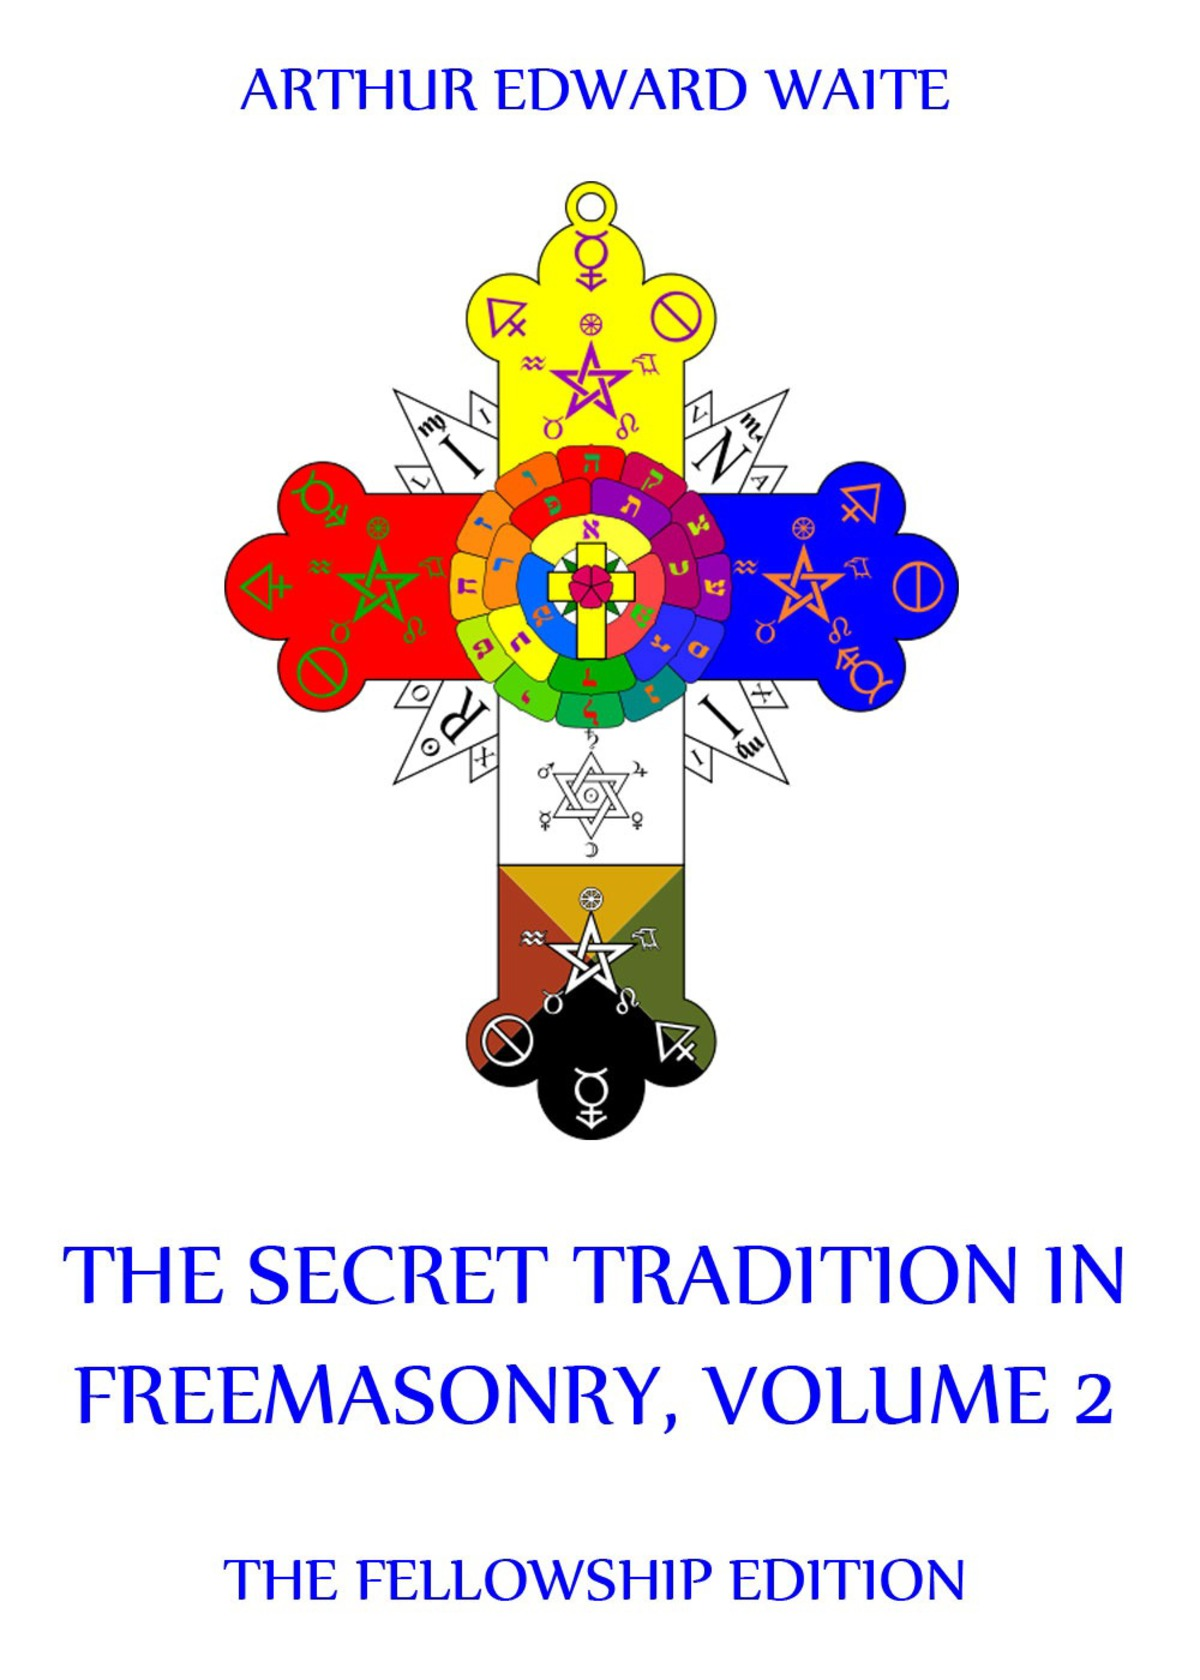 The Secret Tradition In Freemasonry, Volume 2